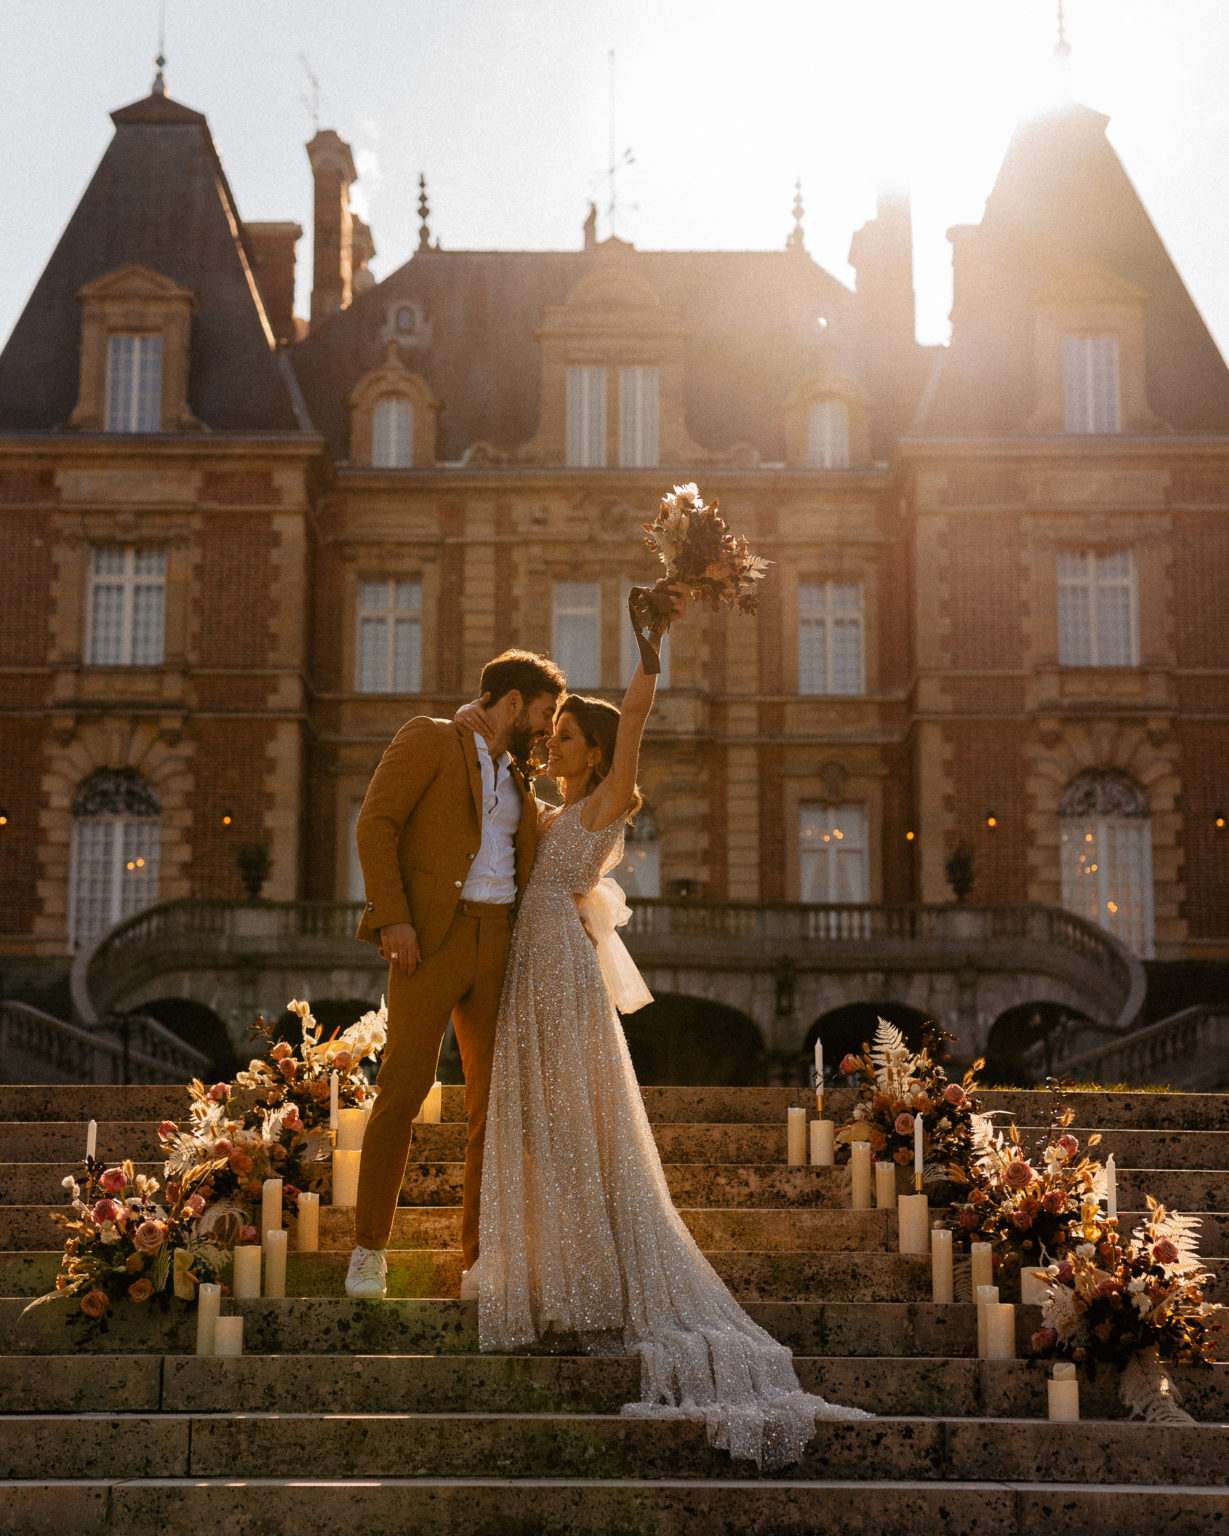 Elopement wedding in castle Bouffemont at golden hour of sunset